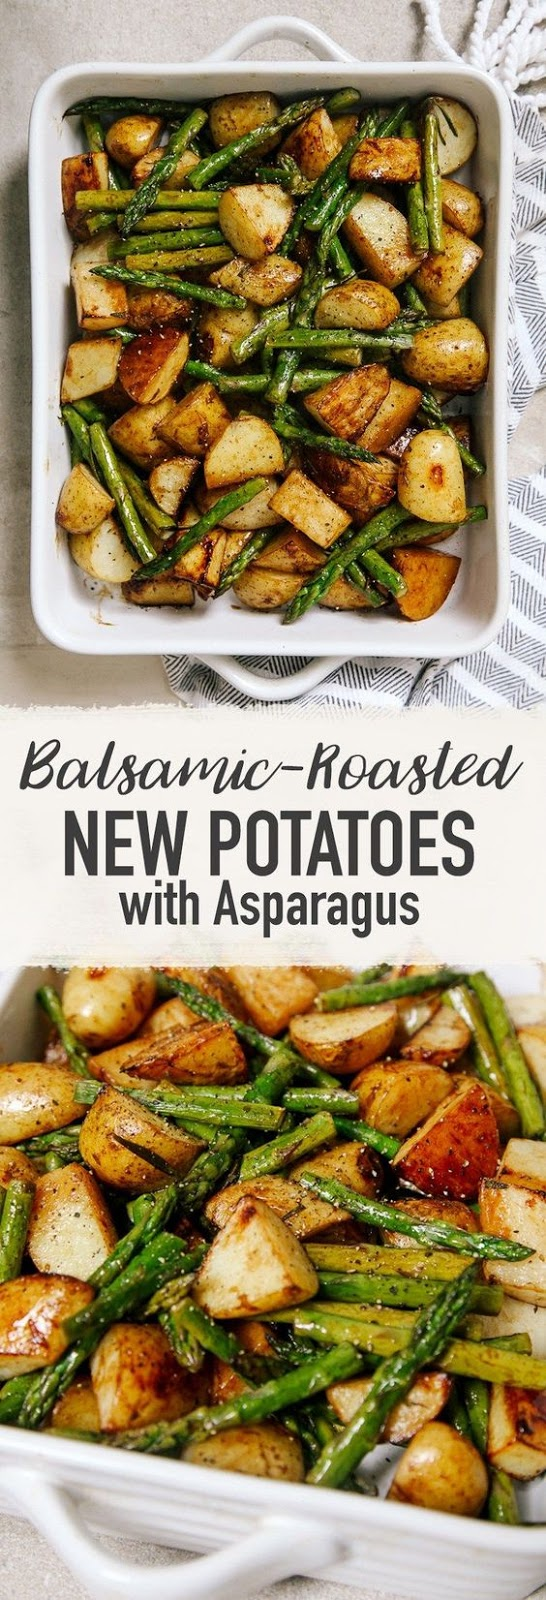 BALSAMIC ROASTED NEW POTATOES WITH ASPARAGUS  #masonjar #healthy #recipes #greatist #vegetarian #breakfast #brunch  #legumes #chicken #casseroles #tortilla #homemade #popularrcipes #poultry #delicious #pastafoodrecipes  #Easy #Spices #ChopSuey #Soup #Classic #gingerbread #ginger #cake #classic #baking #dessert #recipes #christmas #dessertrecipes #Vegetarian #Food #Fish #Dessert #Lunch #Dinner #SnackRecipes #BeefRecipes #DrinkRecipes #CookbookRecipesEasy #HealthyRecipes #AllRecipes #ChickenRecipes #CookiesRecipes #ріzzа #pizzarecipe #vеgеtаrіаn #vegetarianrecipes #vеggіеѕ #vеgеtаblеѕ #grееnріzzа #vеggіеріzzа #feta #pesto #artichokes #brоссоlіSаvе   #recipesfordinner #recipesfordinnereasy #recipeswithgroundbeef  #recipeseasy #recipesfordinnerhealth #AngeliqueRecipes #RecipeLion #Recipe  #RecipesFromTheBlog #RecipesyouMUST #RecipesfromourFavoriteBloggers #BuzzFeed #Tasty #BuzzFeed #Tasty #rice #ricerecipes #chicken #dinner #dinnerrecipes #easydinner #friedrice #veggiespeas #broccoli #cauliflower #vegies,  #vegetables  #dinnerrecipes #dinnerideas #dinner #dinnerrecipeseasy #dinnerrecipesforfamily #TheDinnerMom #DinnerthenDessert #DinnerattheZoo #QuickandEasyRecipes #DinnerattheZooRecipes #DINNERRecipes #DinnerRecipesSimpleMeals